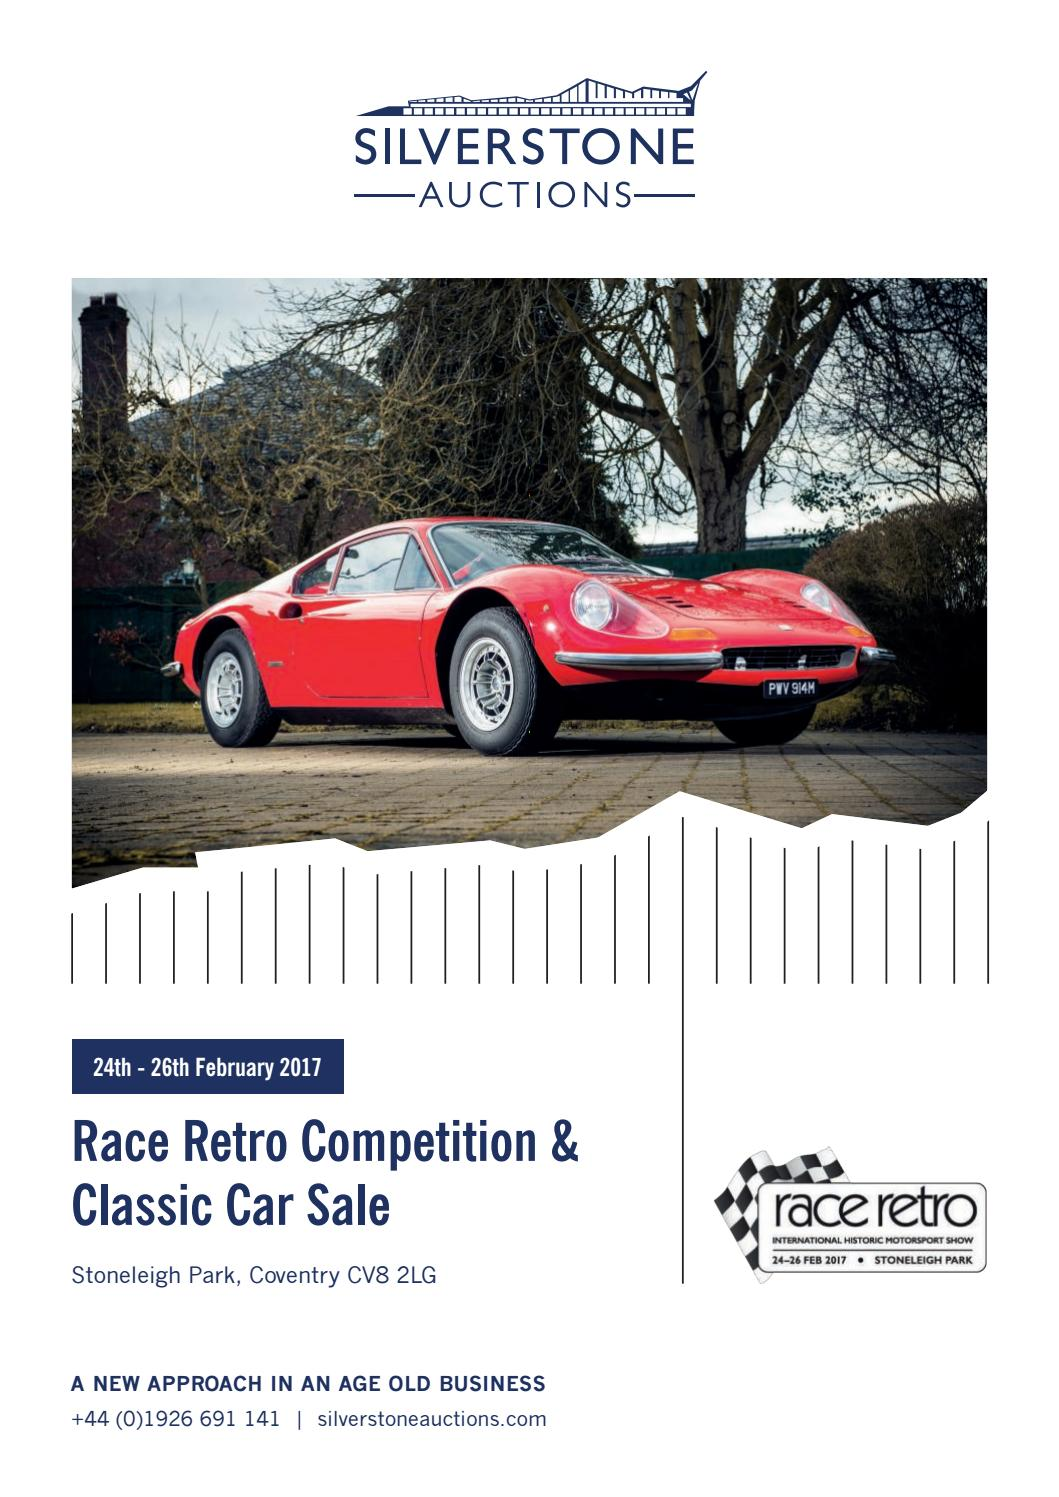 hight resolution of race retro competition classic car sale 24th 26th february by wiring diagram 1955 aston martin db3s ft boxcar free download wiring